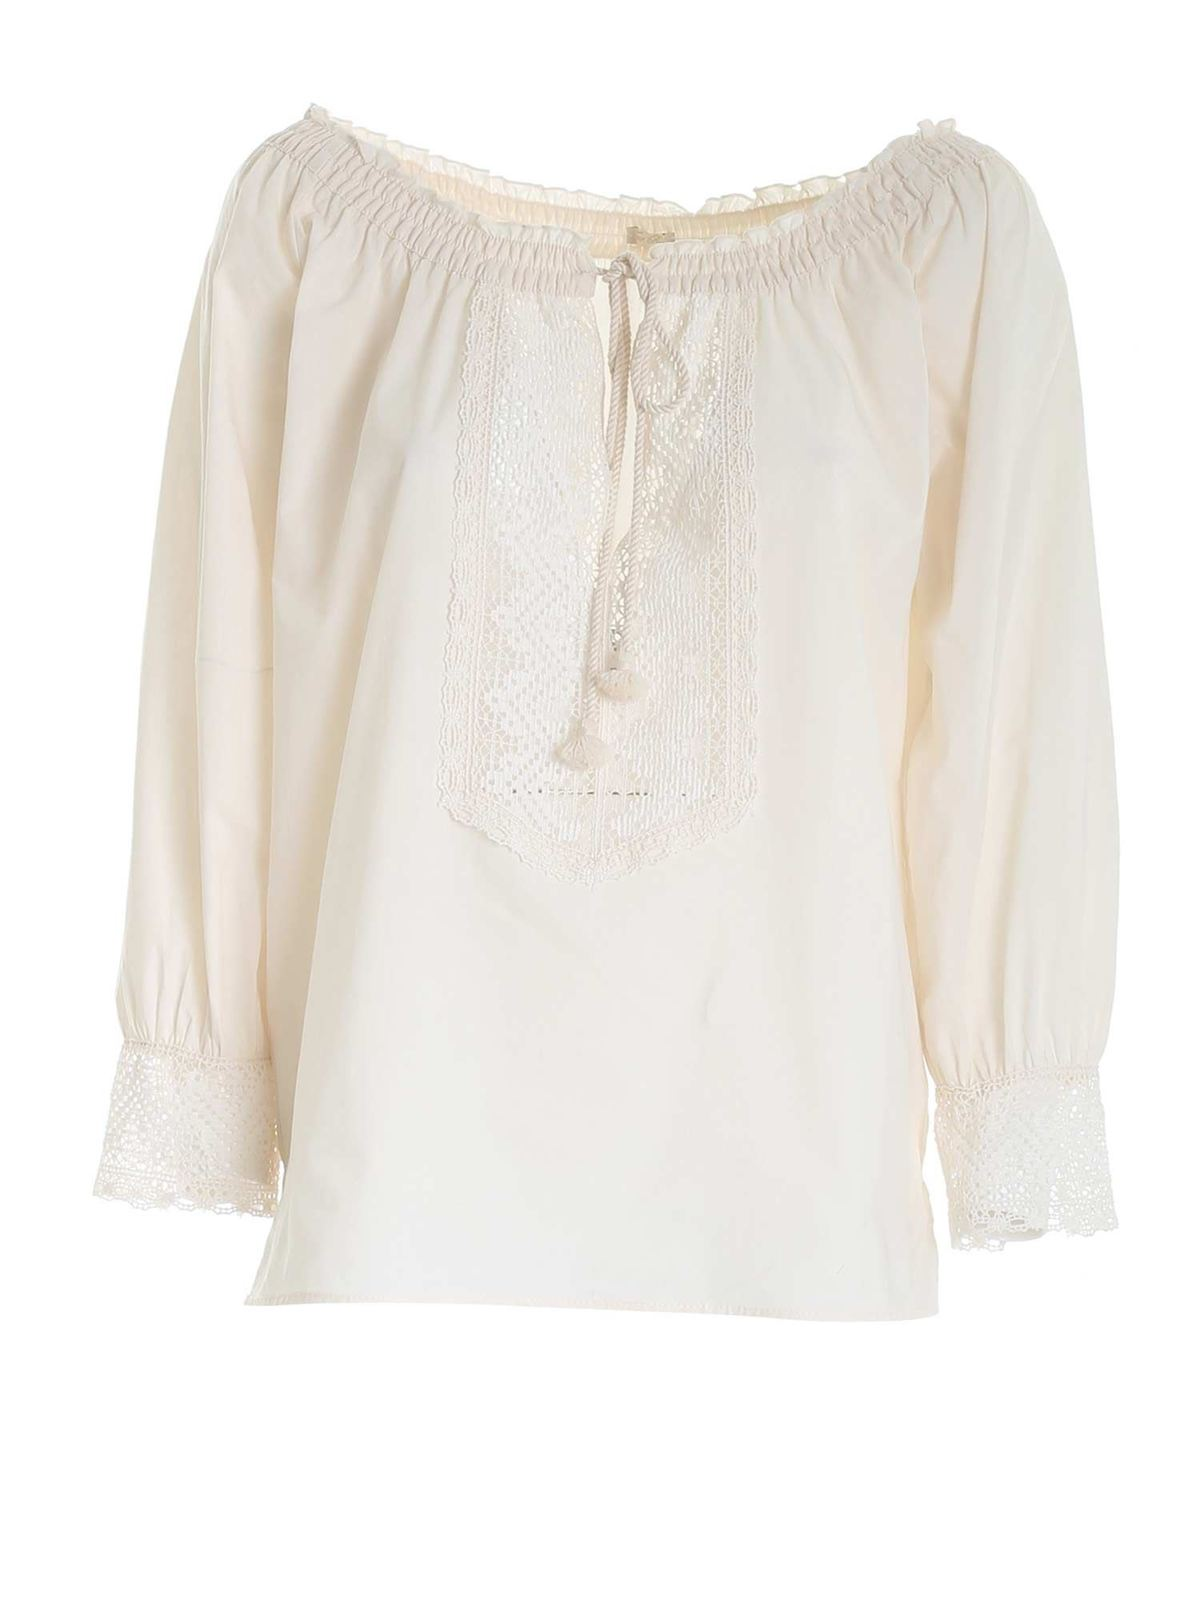 True Royal LACE SHIRT IN CREAM COLOR